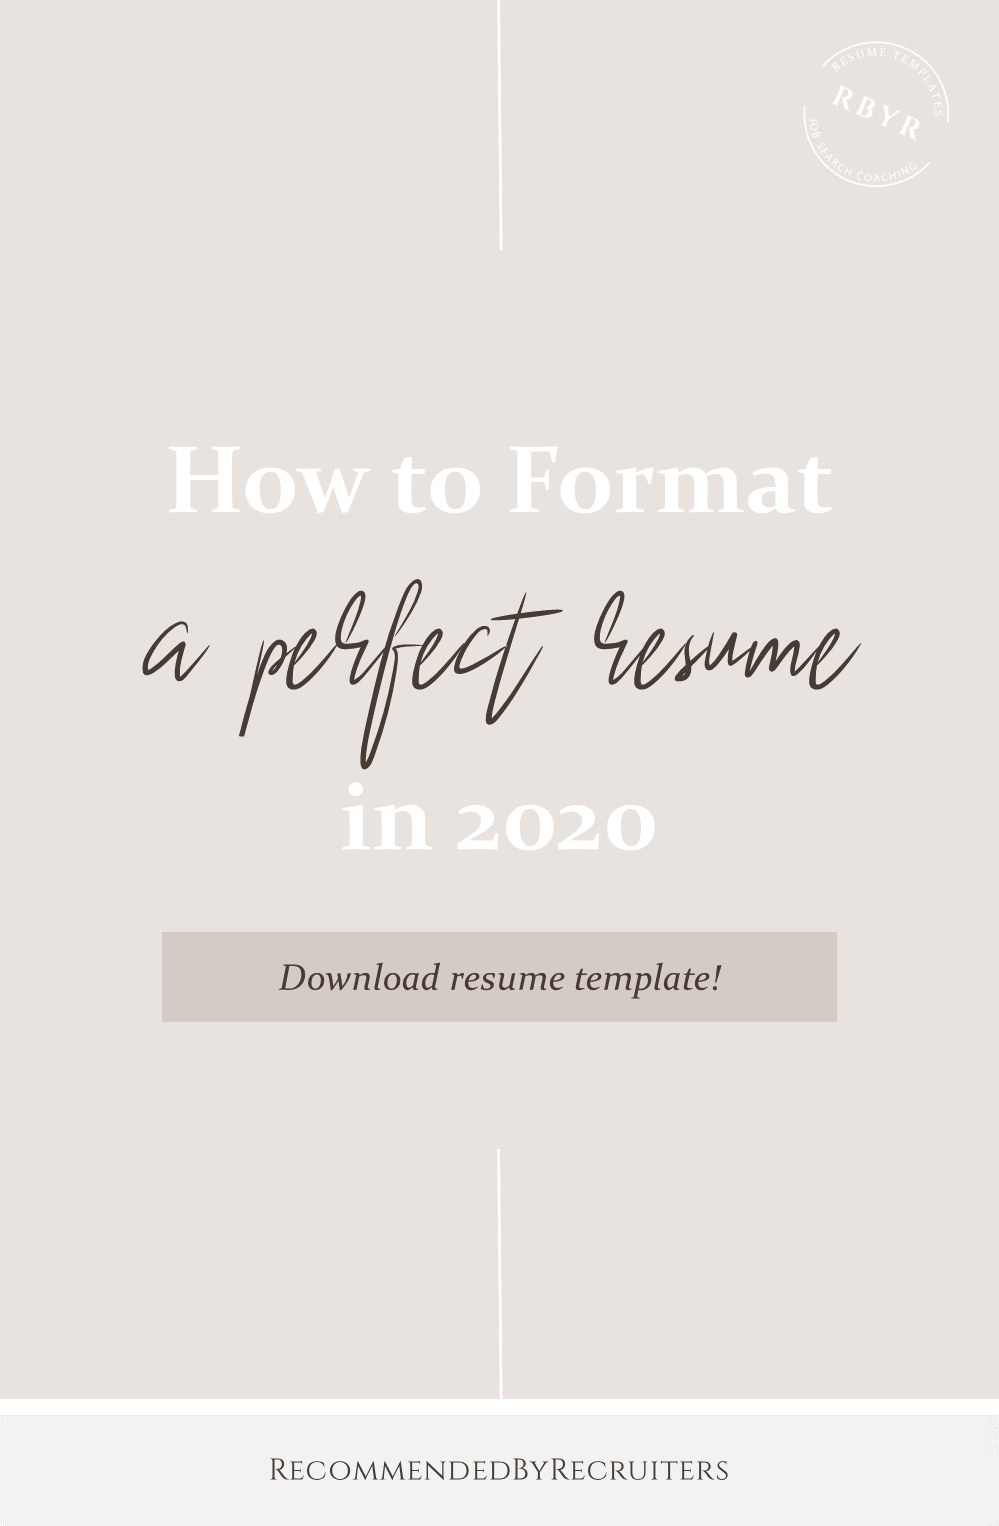 How to Format Perfect Resume in 2020, CV Format and Design